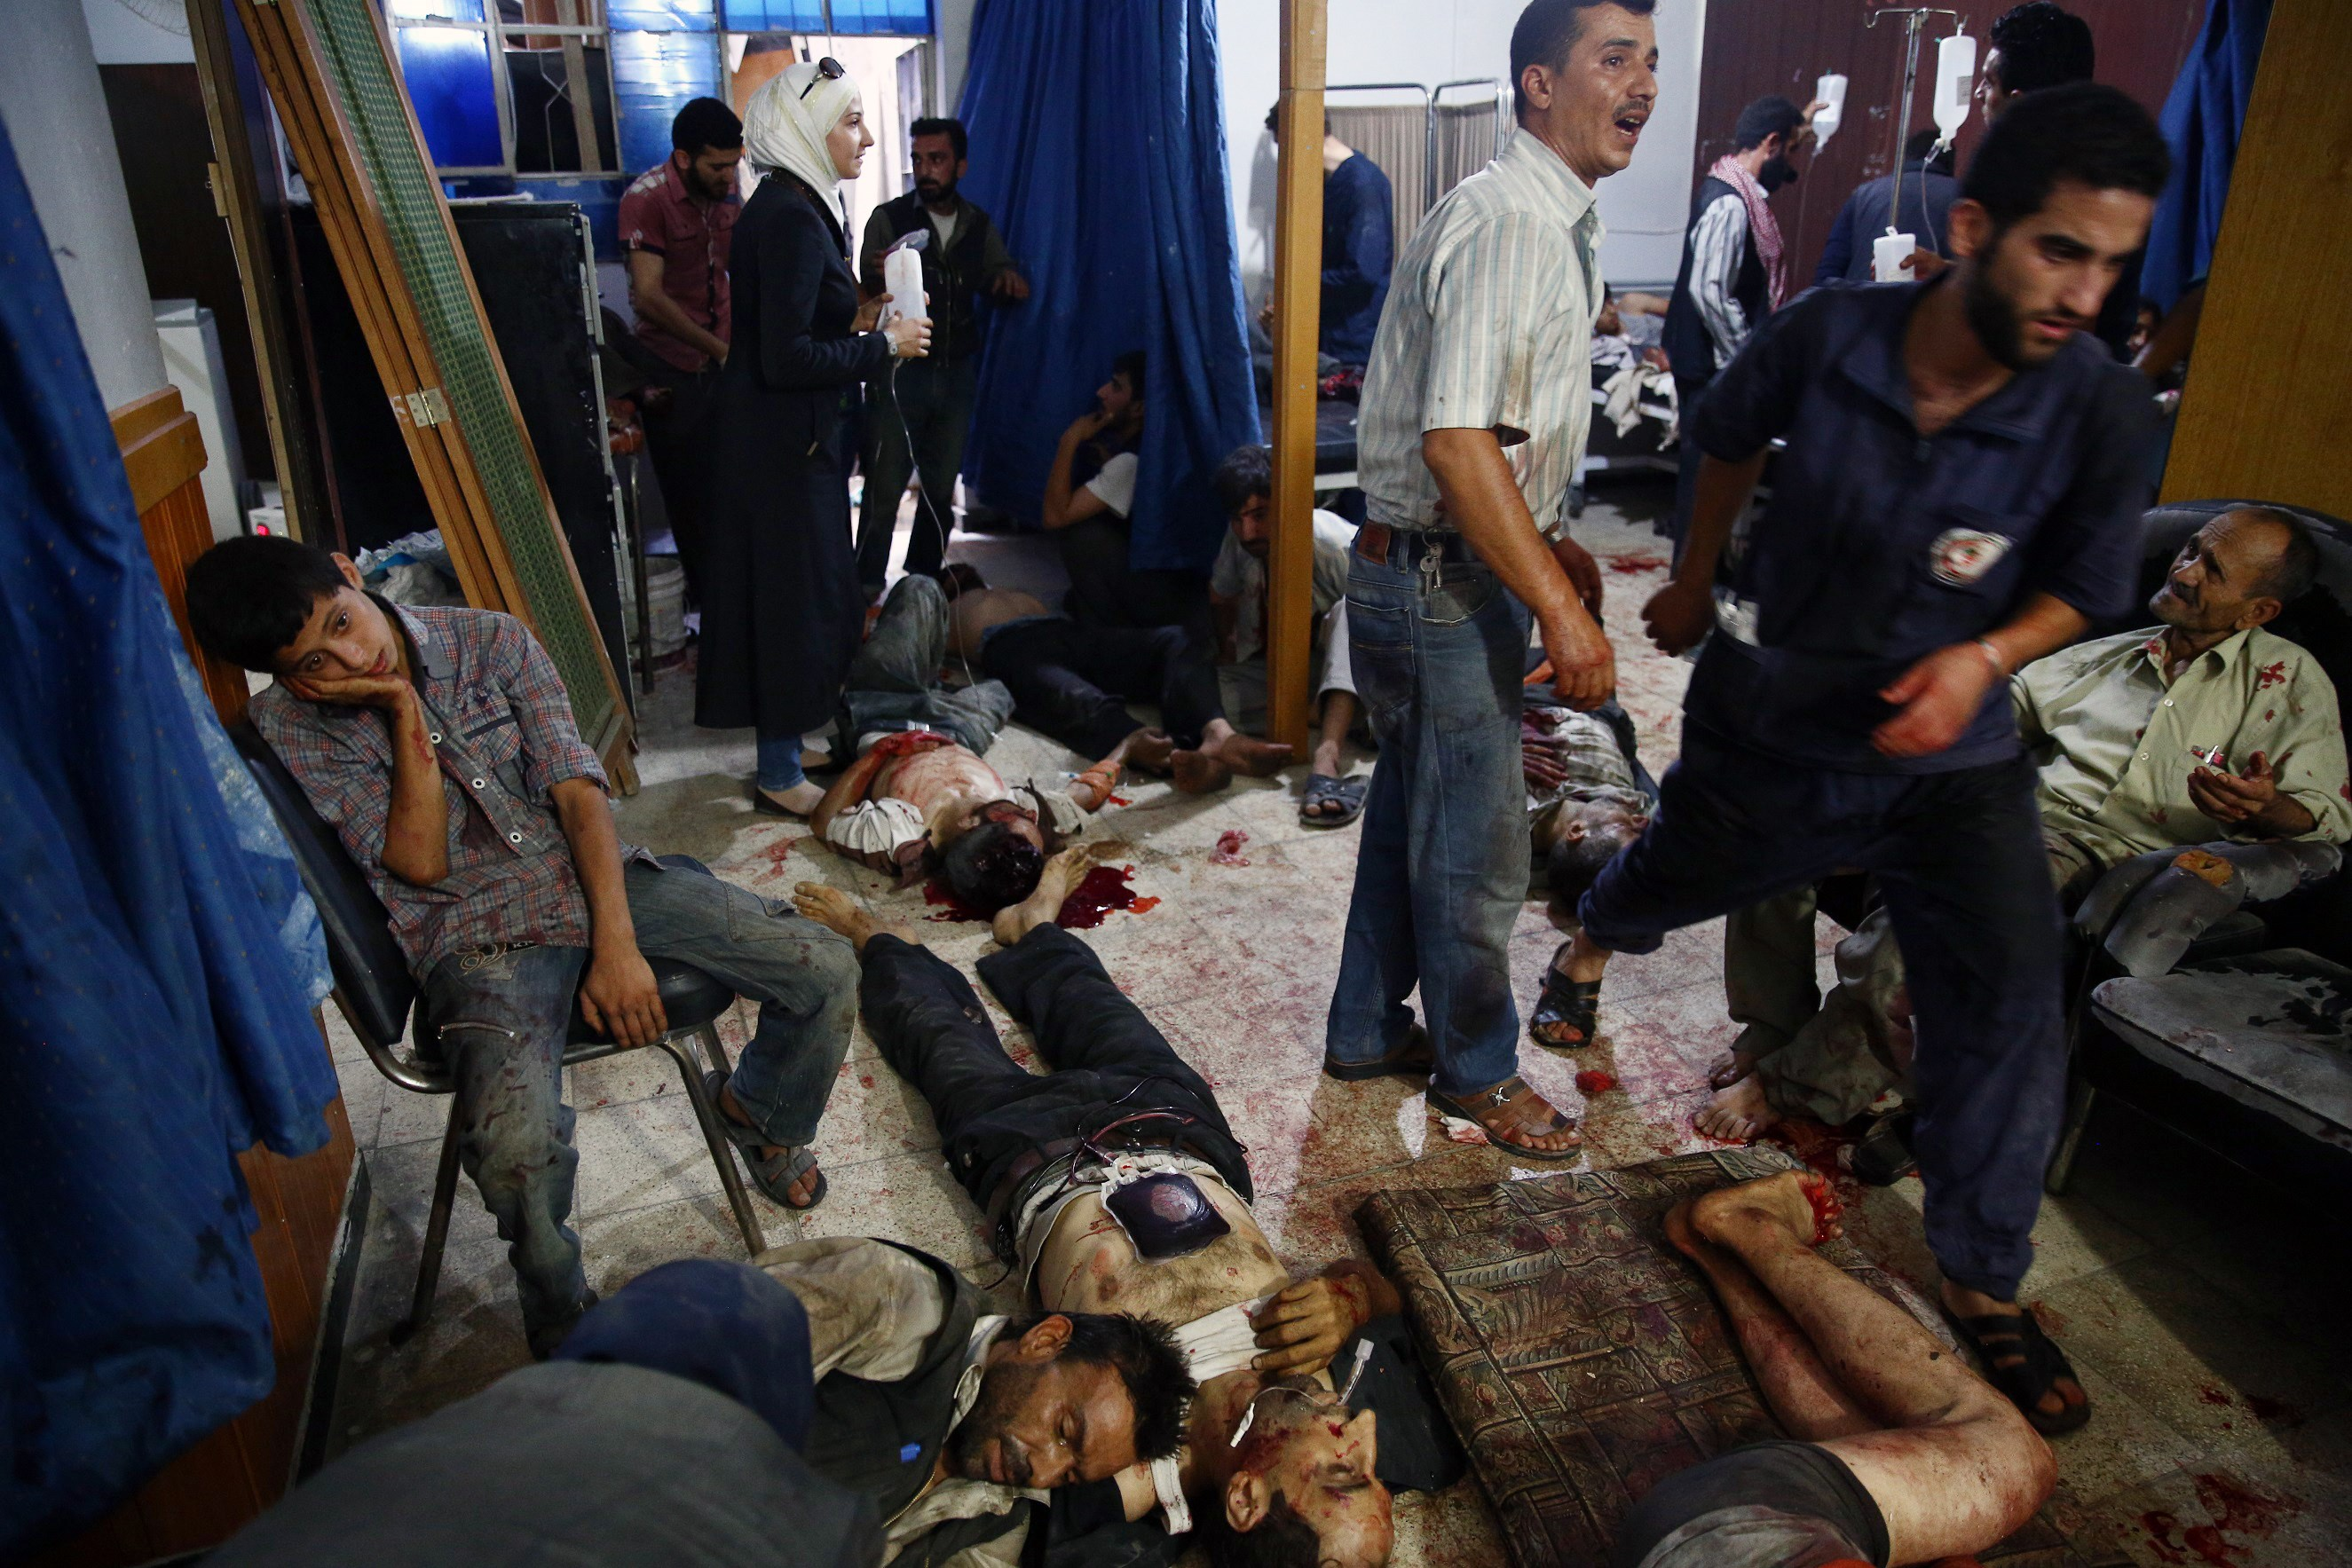 Syrian injured people receive treatment at a make-shift hospital in the rebel-held area of Douma, east of the capital Damascus, following air strikes by Syrian government forces on a marketplace on August 16, 2015. At least 70 people were killed and 200 people were injured, with the death toll -most of them civilians- likely to rise as many of the wounded were in serious condition, the Syrian Observatory for Human Rights said.    AFP PHOTO / ABD DOUMANY  SYRIA-CONFLICT